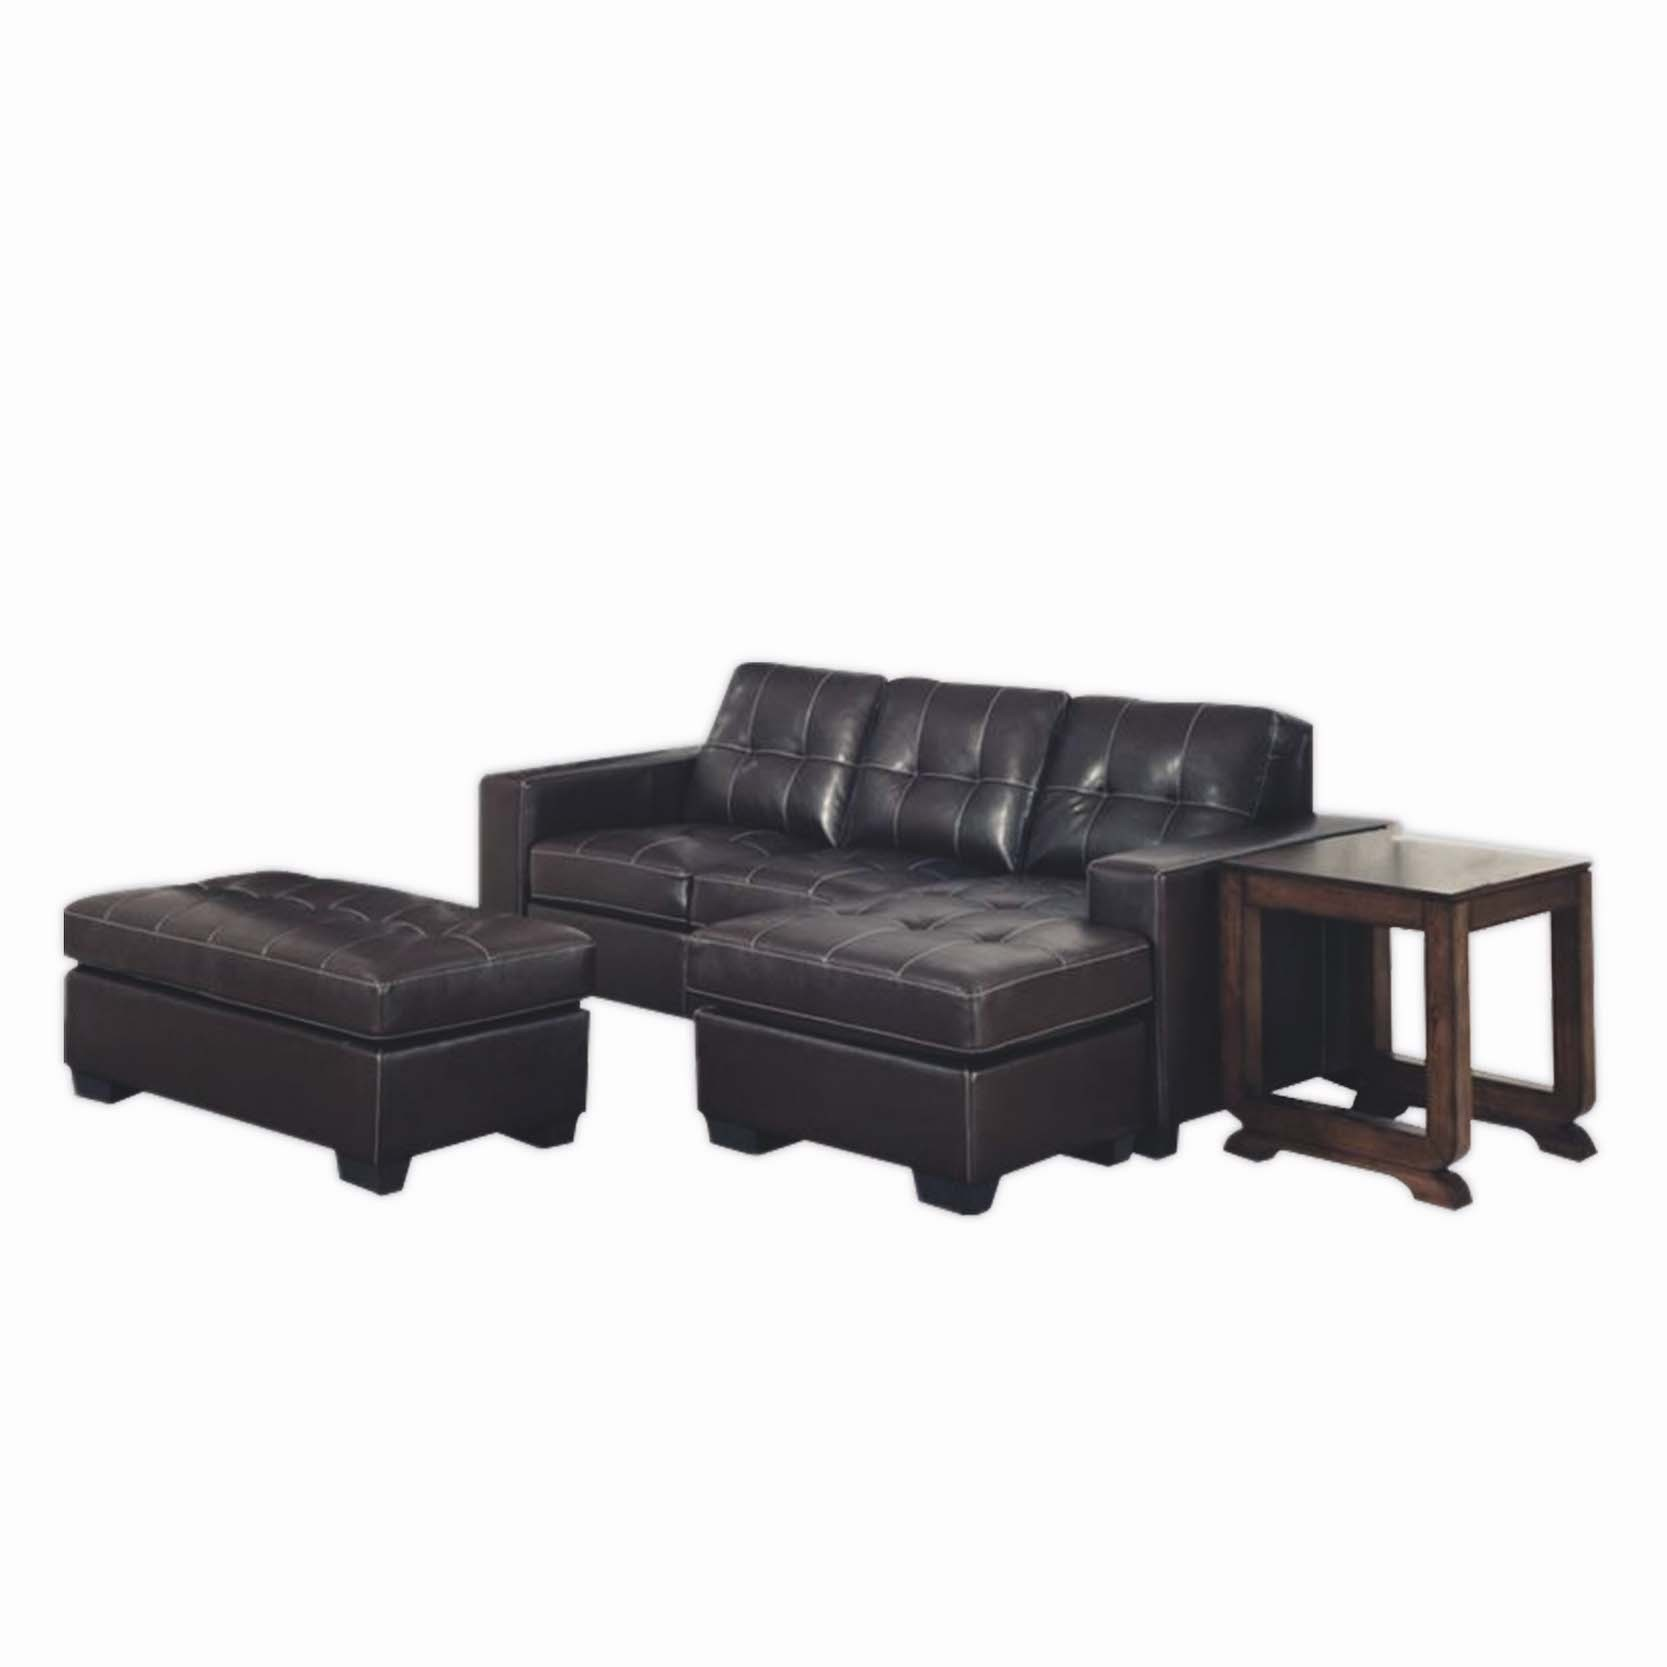 3 Seater Leather Lounge Suite with Ottoman